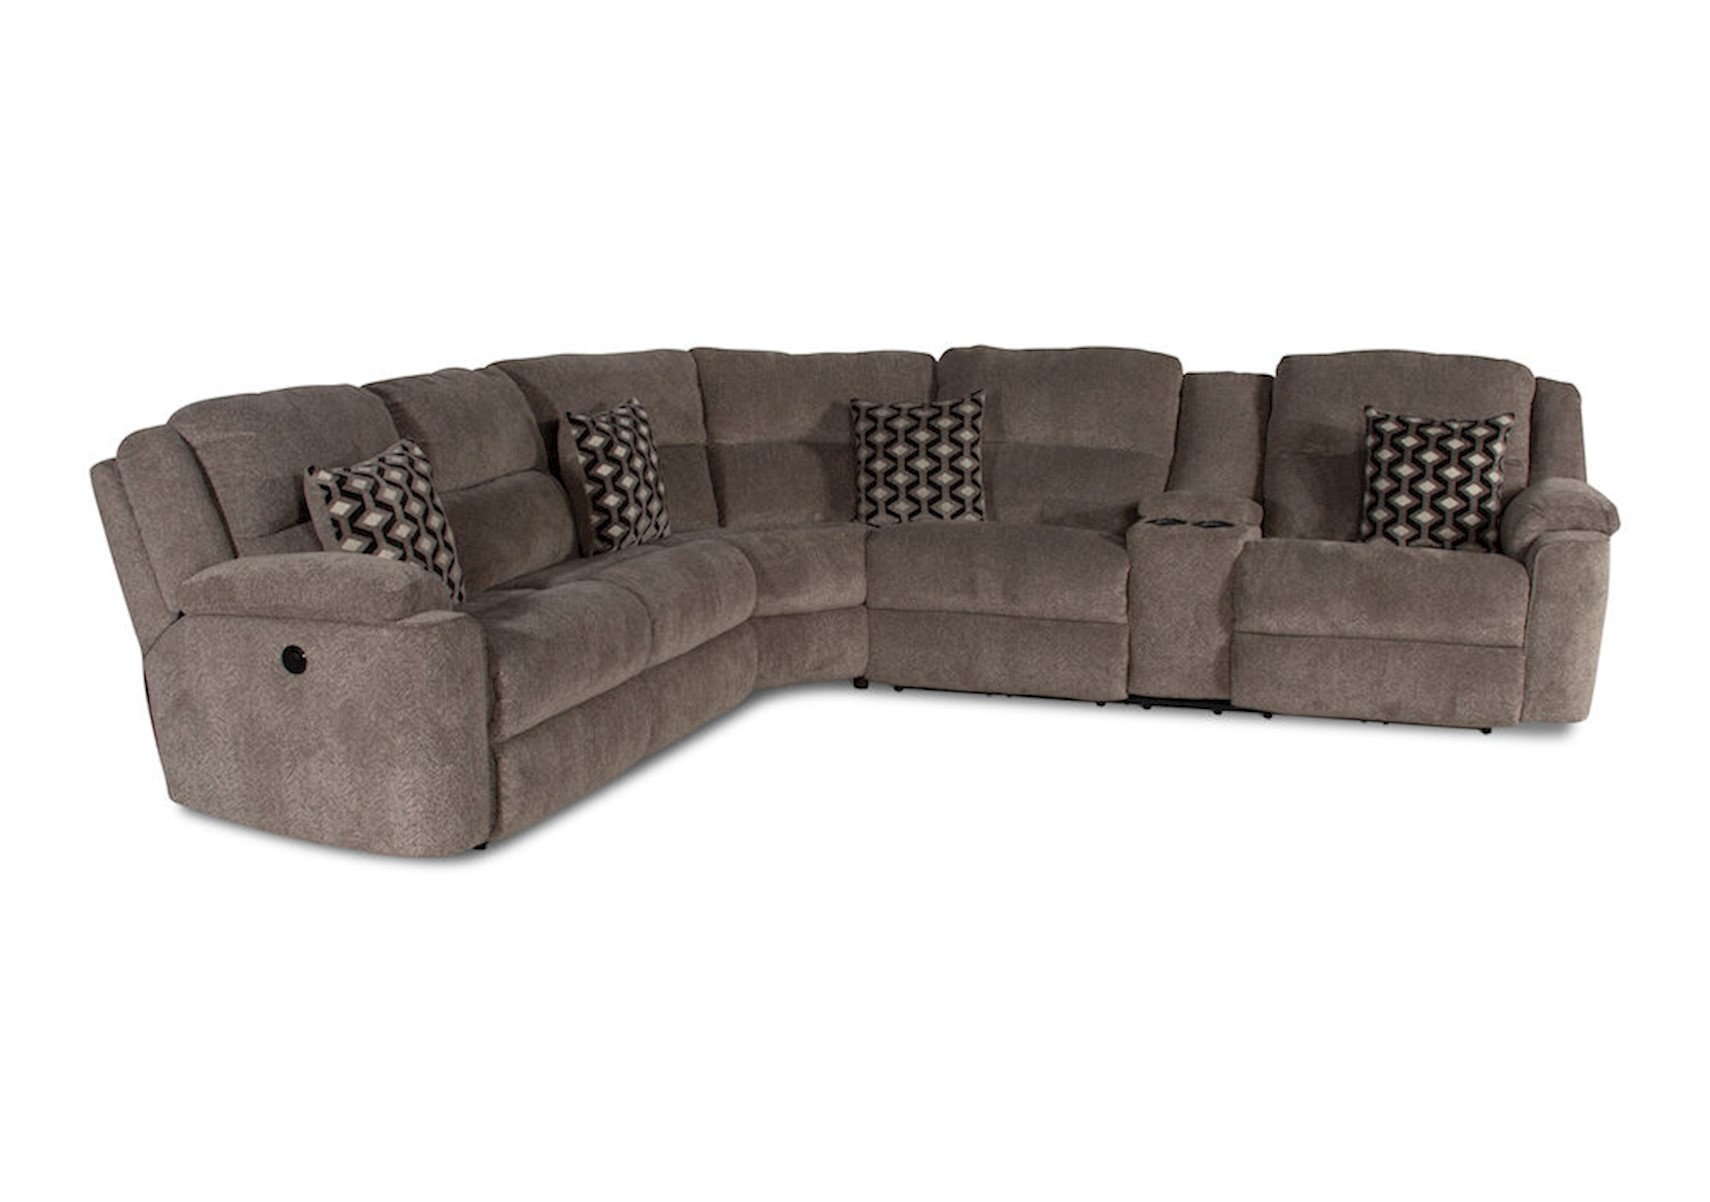 Stupendous Lacks Catalina 3 Pc Reclining Sectional With Power Squirreltailoven Fun Painted Chair Ideas Images Squirreltailovenorg